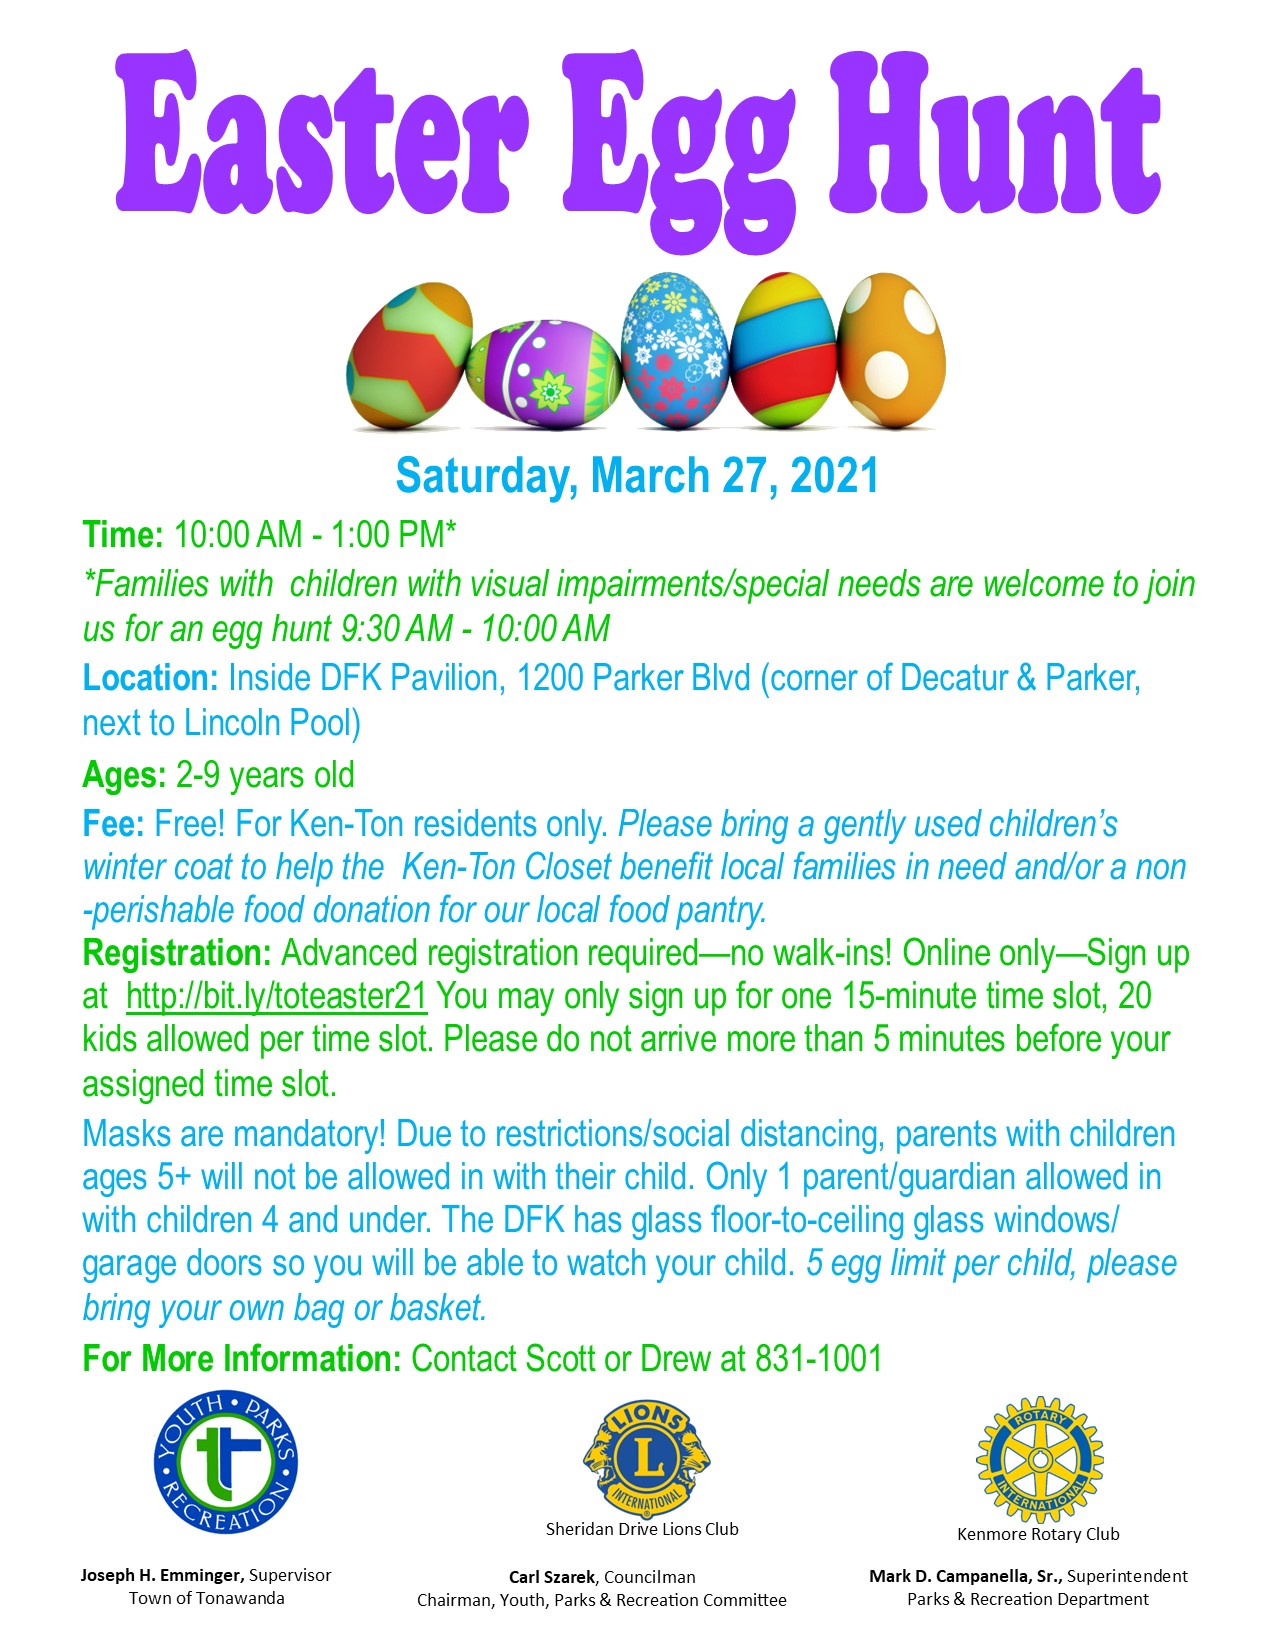 Easter Egg Hunt Flyer 2021 updated 2 25